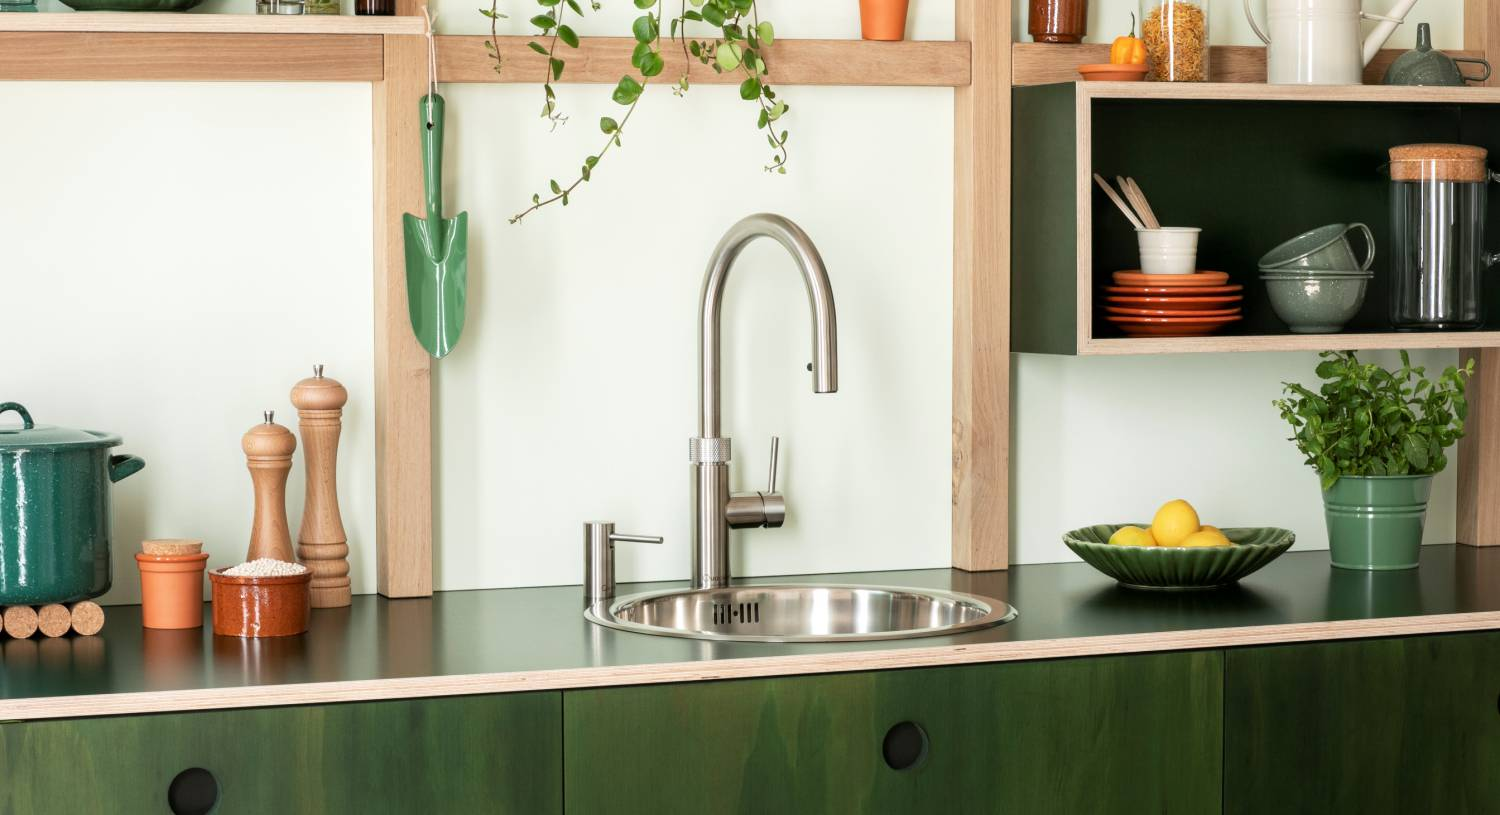 See-through fridges and boiling water from the tap. Welcome to your super kitchen